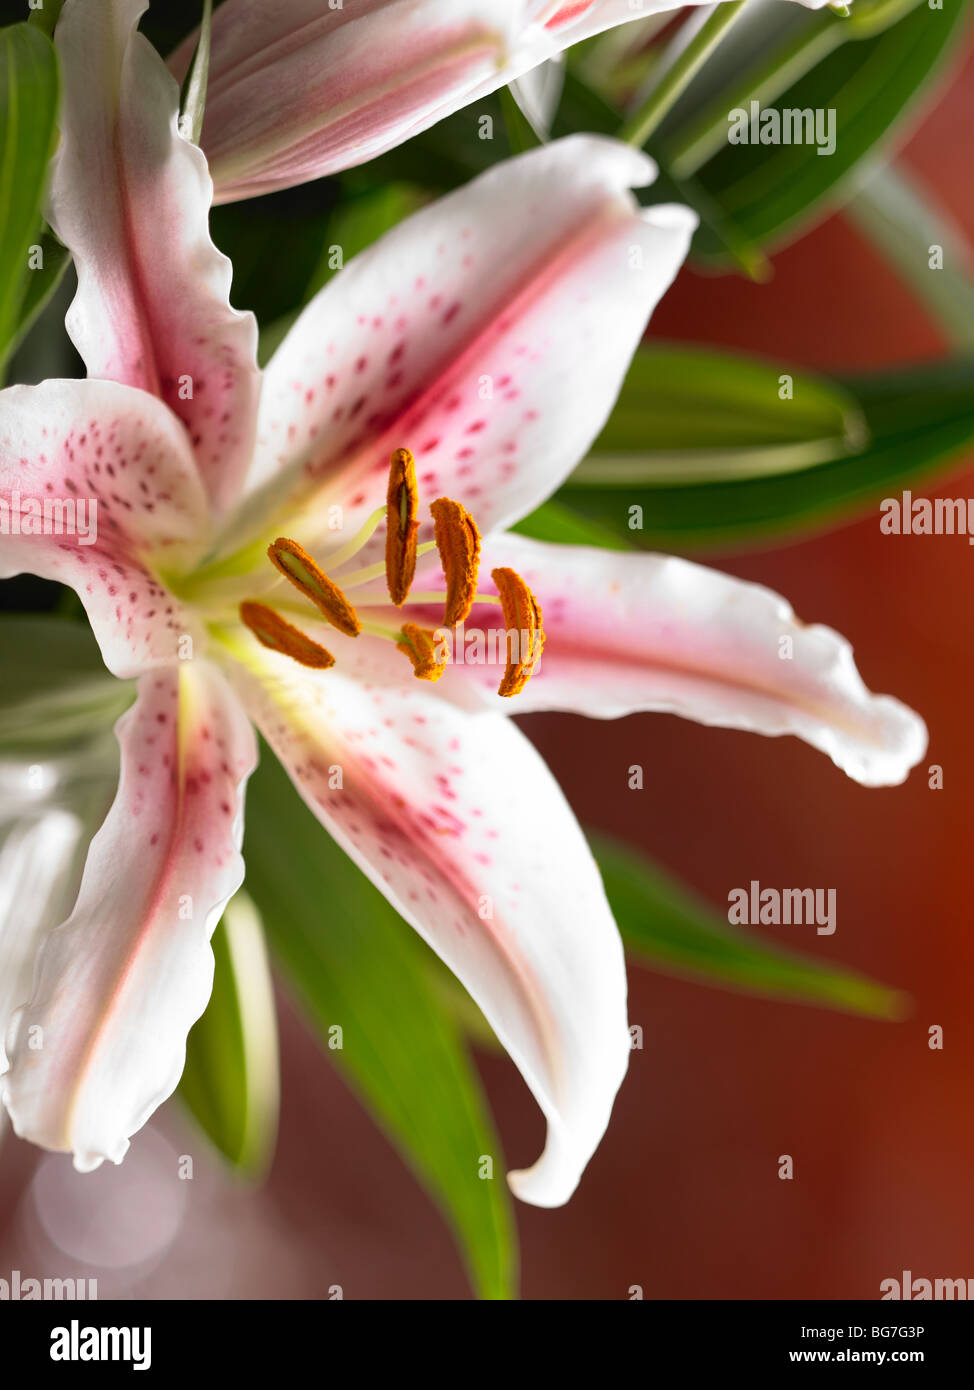 Lily close up - Stock Image